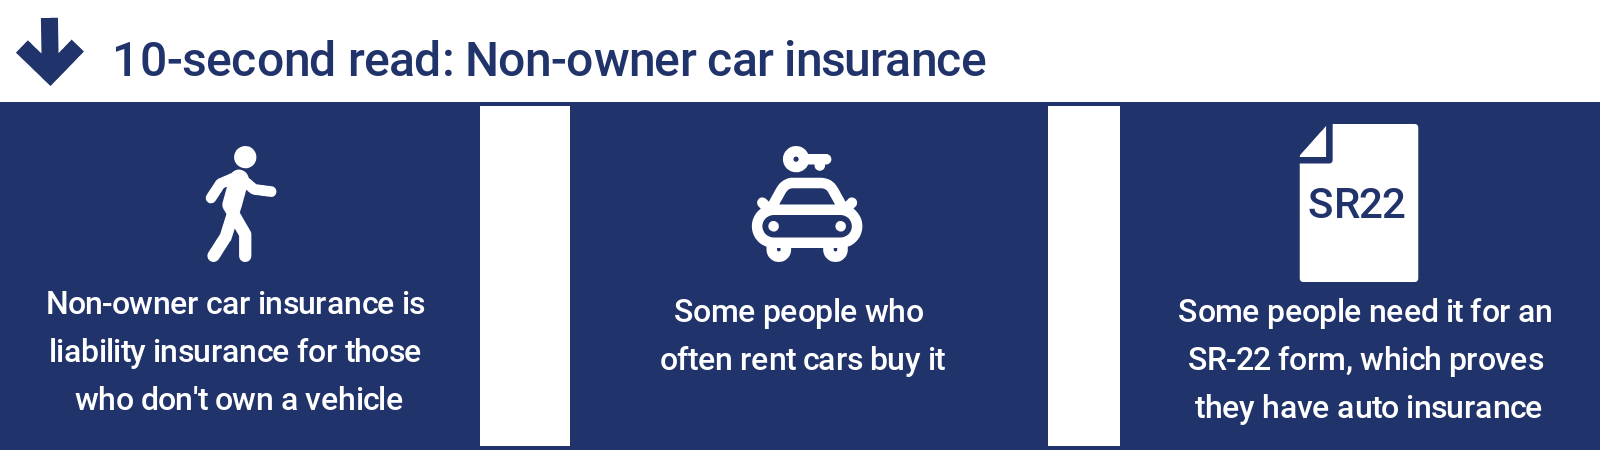 non owner car insurance explained